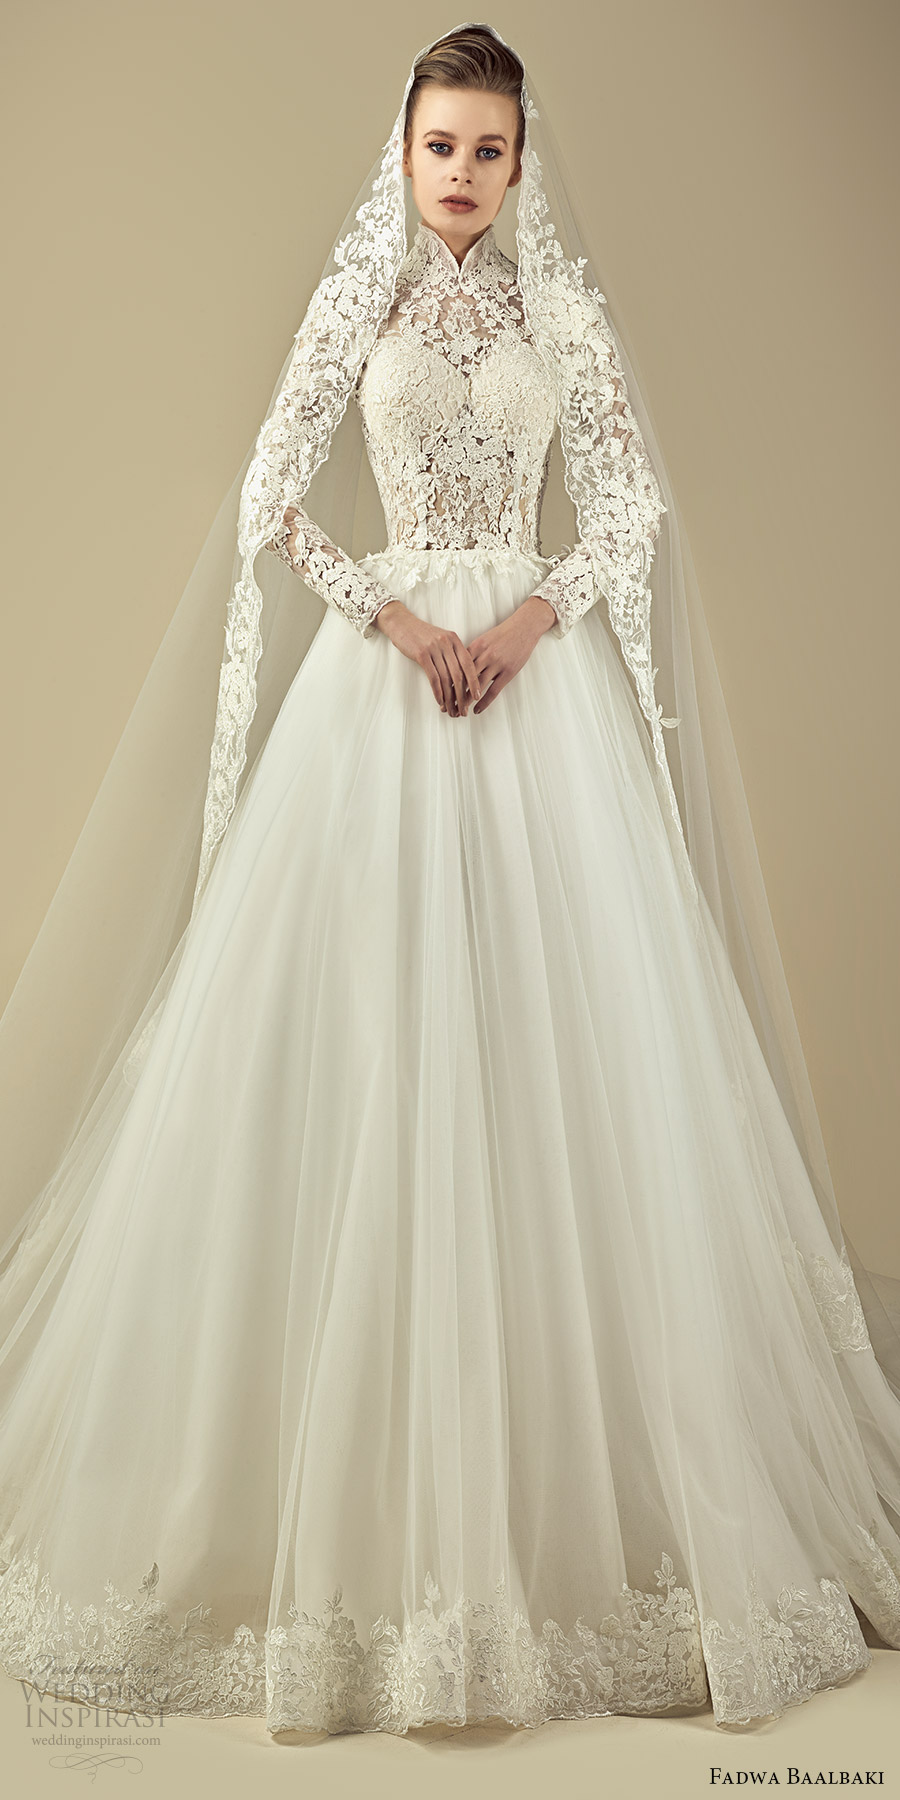 fadwa baalbaki spring 2017 couture illusion long sleeves high neck lace a line wedding dress (11) mv